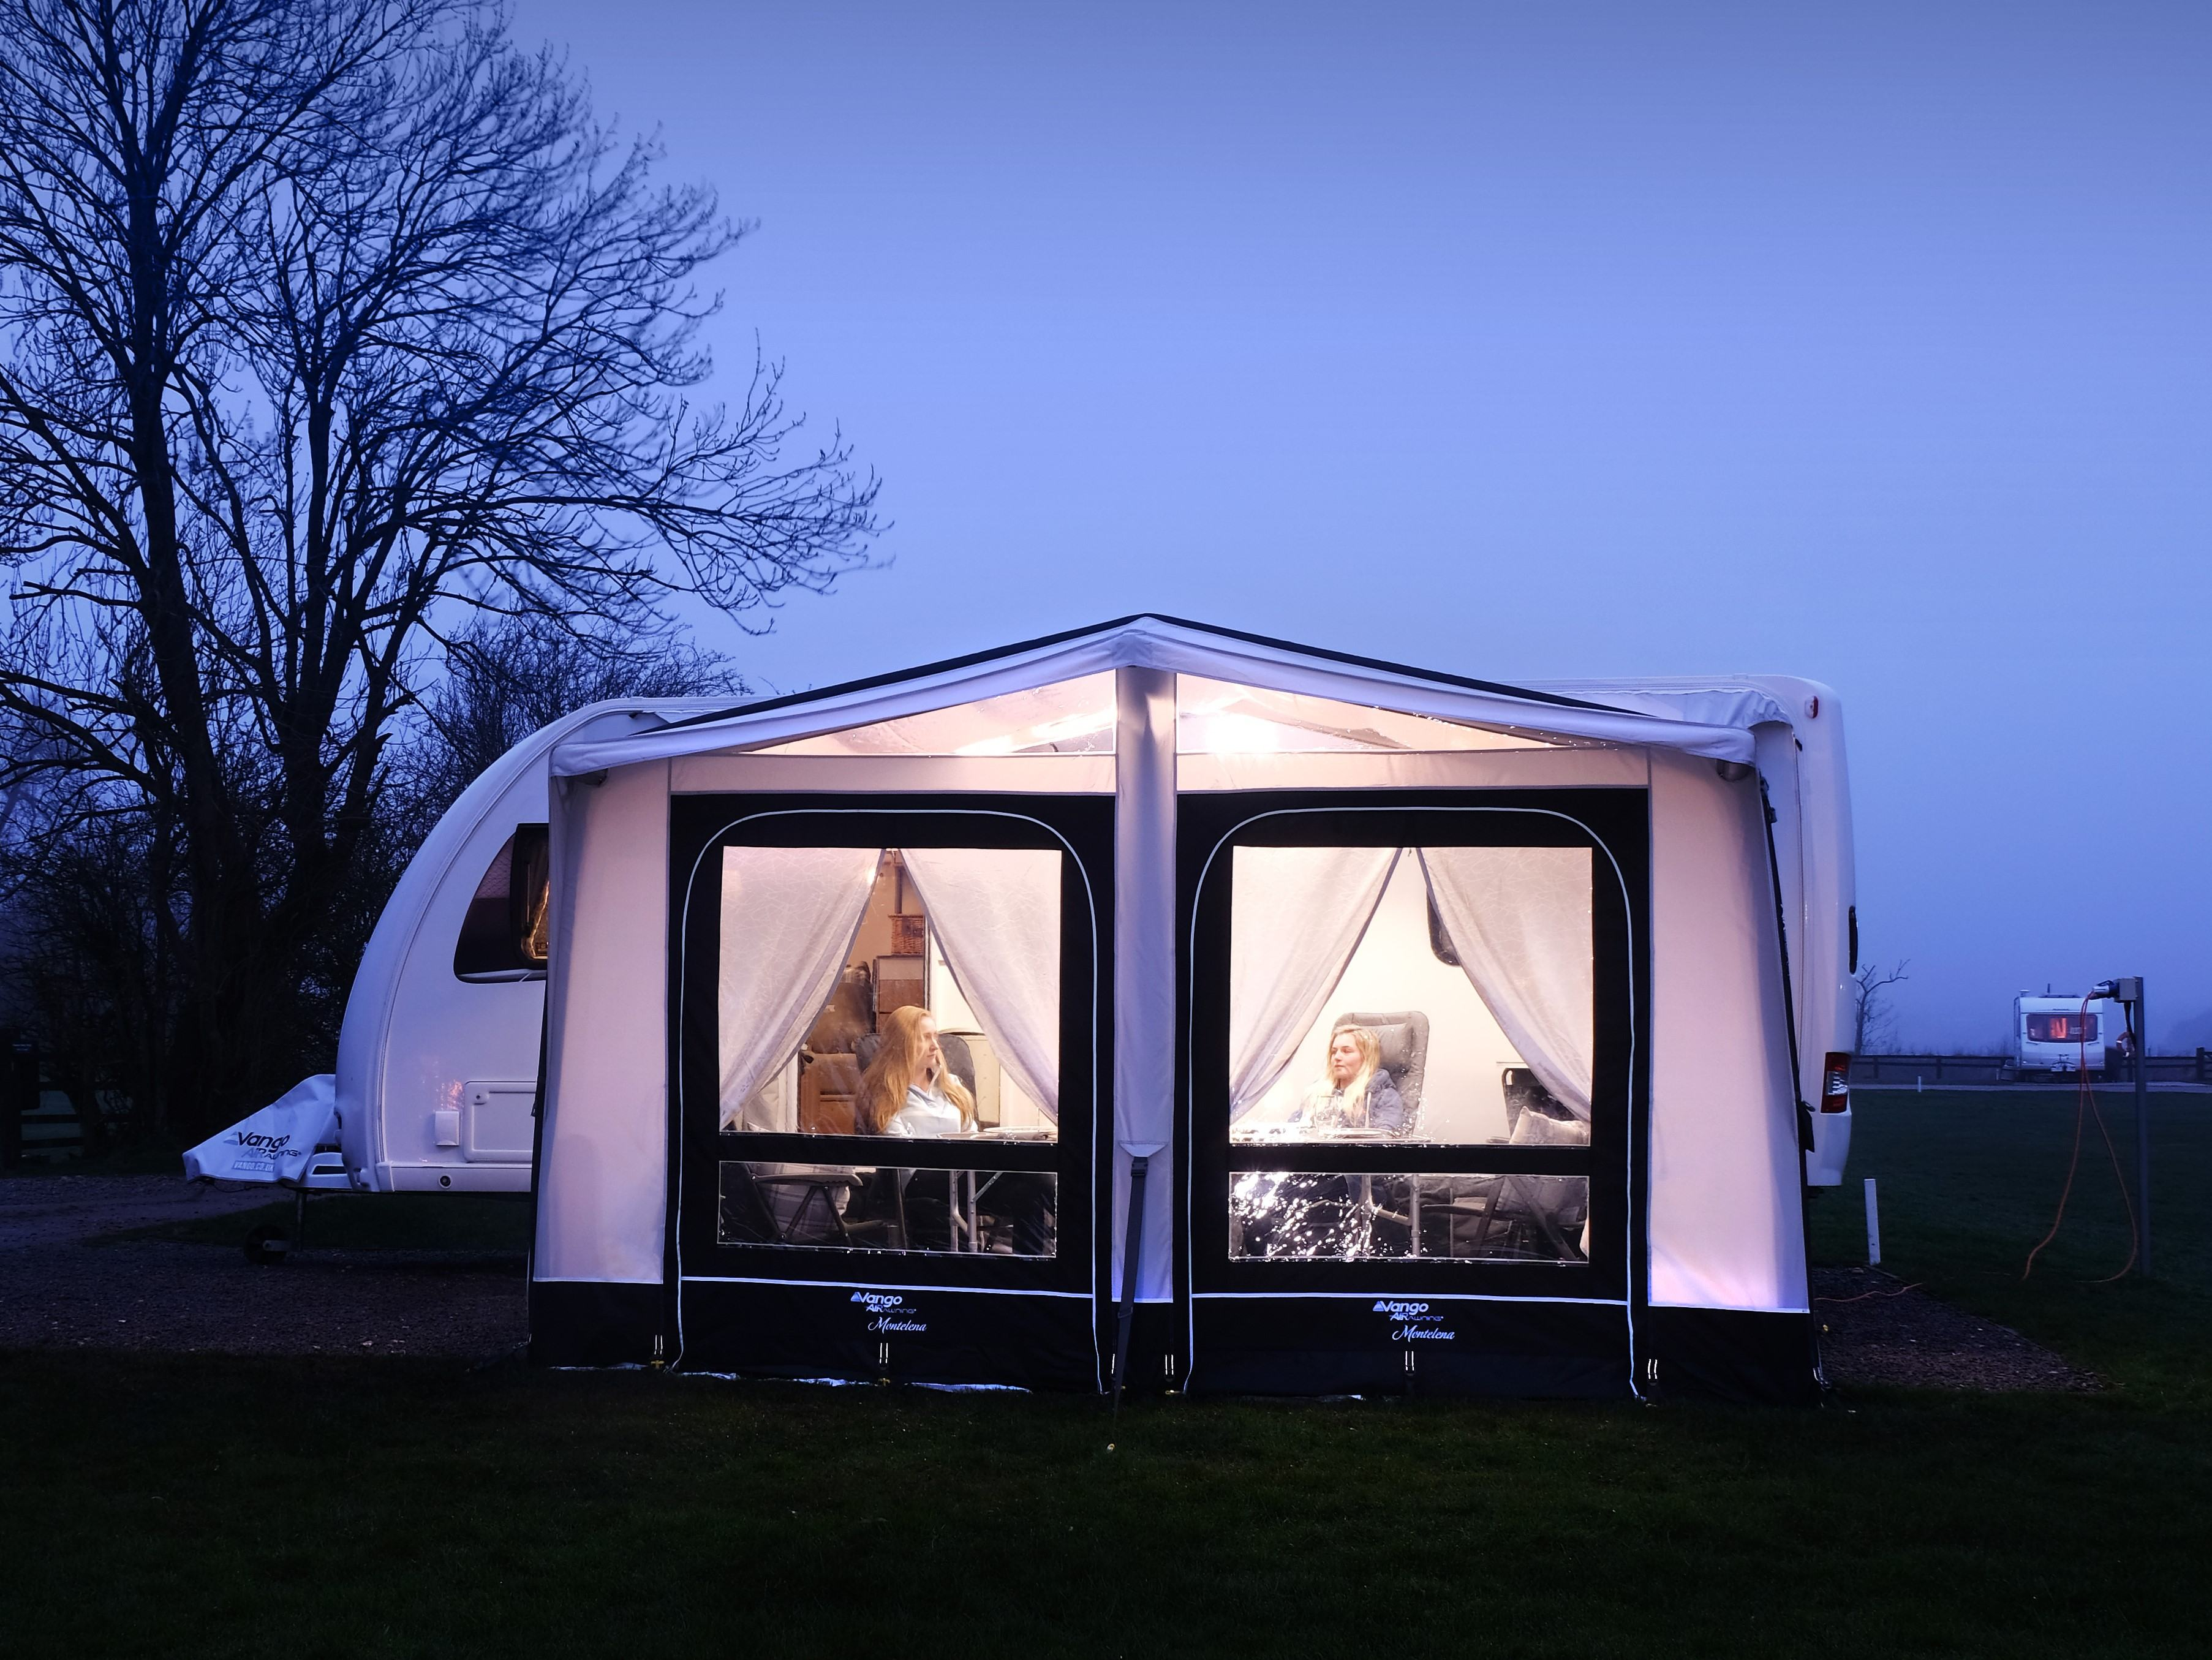 The beautifullt designed Vango Montelena Caravan AirAway awning